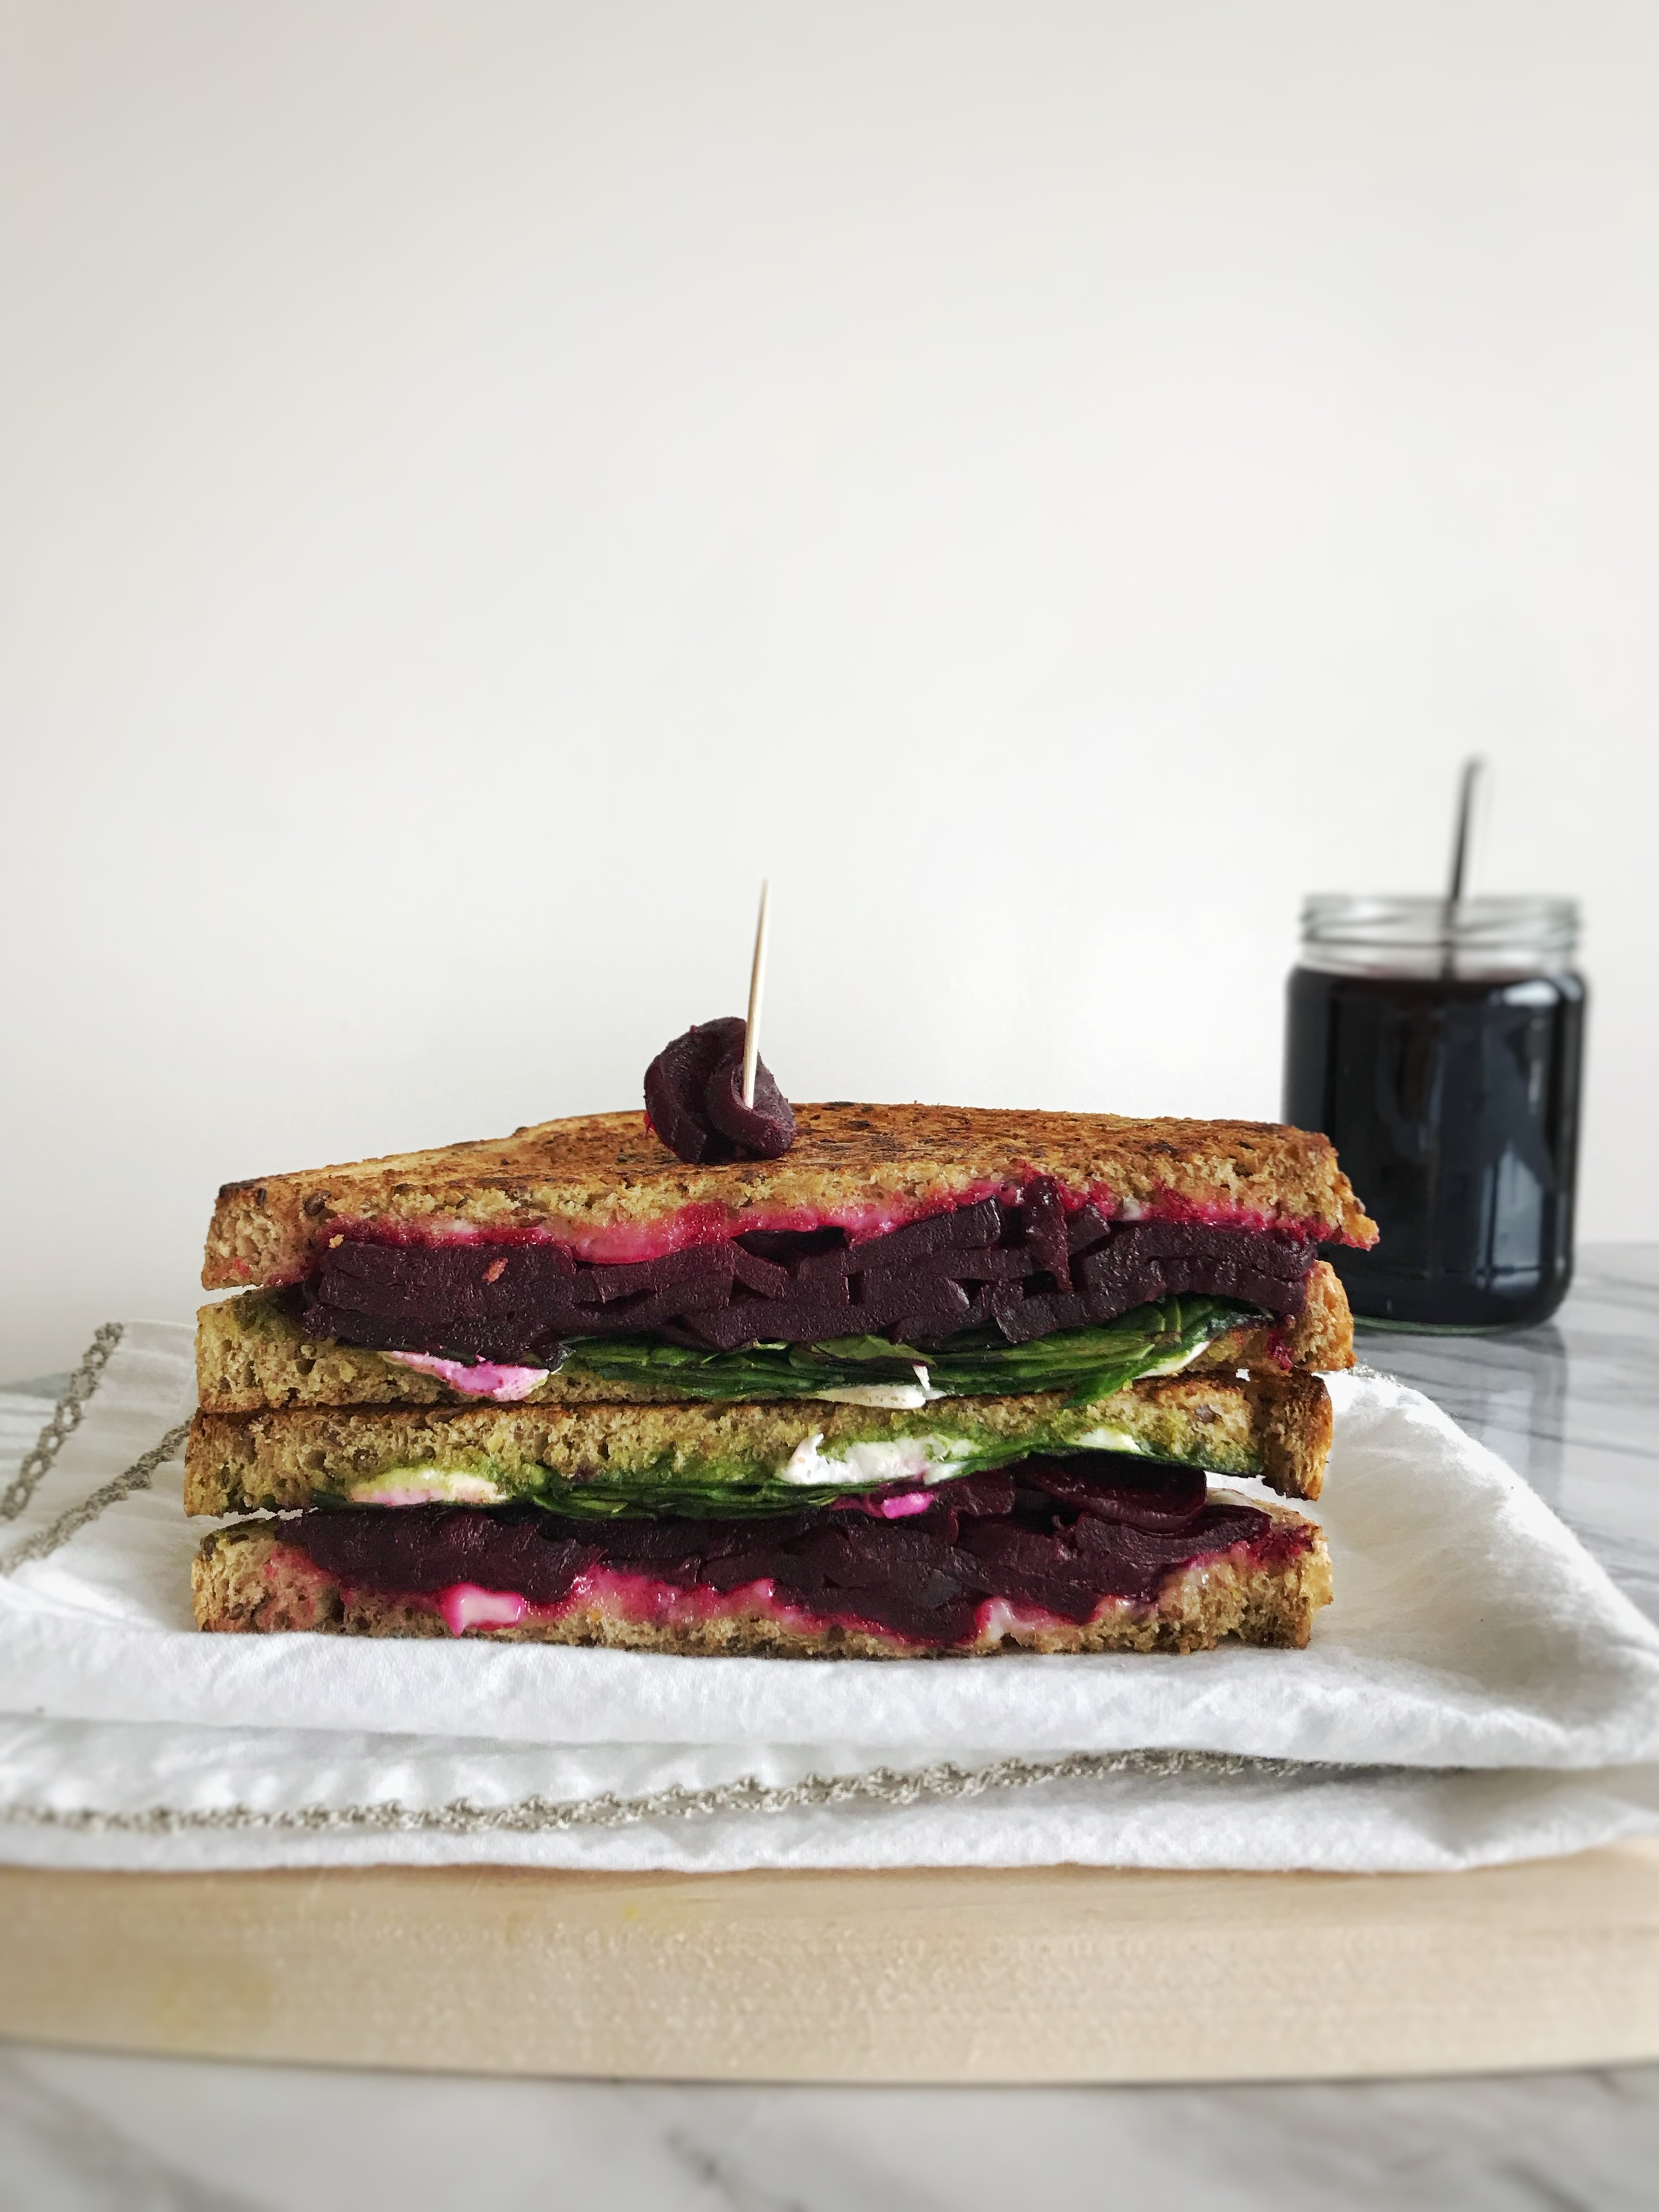 The Grilled Cheese Sandwich - Ingredients:1 roasted beet, sliced2 slices of whole grain, sprouted grain, sourdough breadHandful spinach1/4 avocado1 tbsp goats cheeseDirections:Preheat oven to 350F. Cut one medium sized beet in half, and brush with coconut oil, and your choice of herbs, salt and pepper. Cook on a sheet lined with parchment paper for 7 minutes, flip, then cook for another 5-7 minutes. Check that the beet can be punctured with a fork (it should be soft), then remove from oven, let cool slightly, and cut into slices.To assemble: Spread goats cheese on one slice of bread, then line with beet slices. Add spinach, then avocado, followed by the second slice. Spread coconut oil or ghee on either slice, then cook on a skillet until both sides are golden and crunchy.